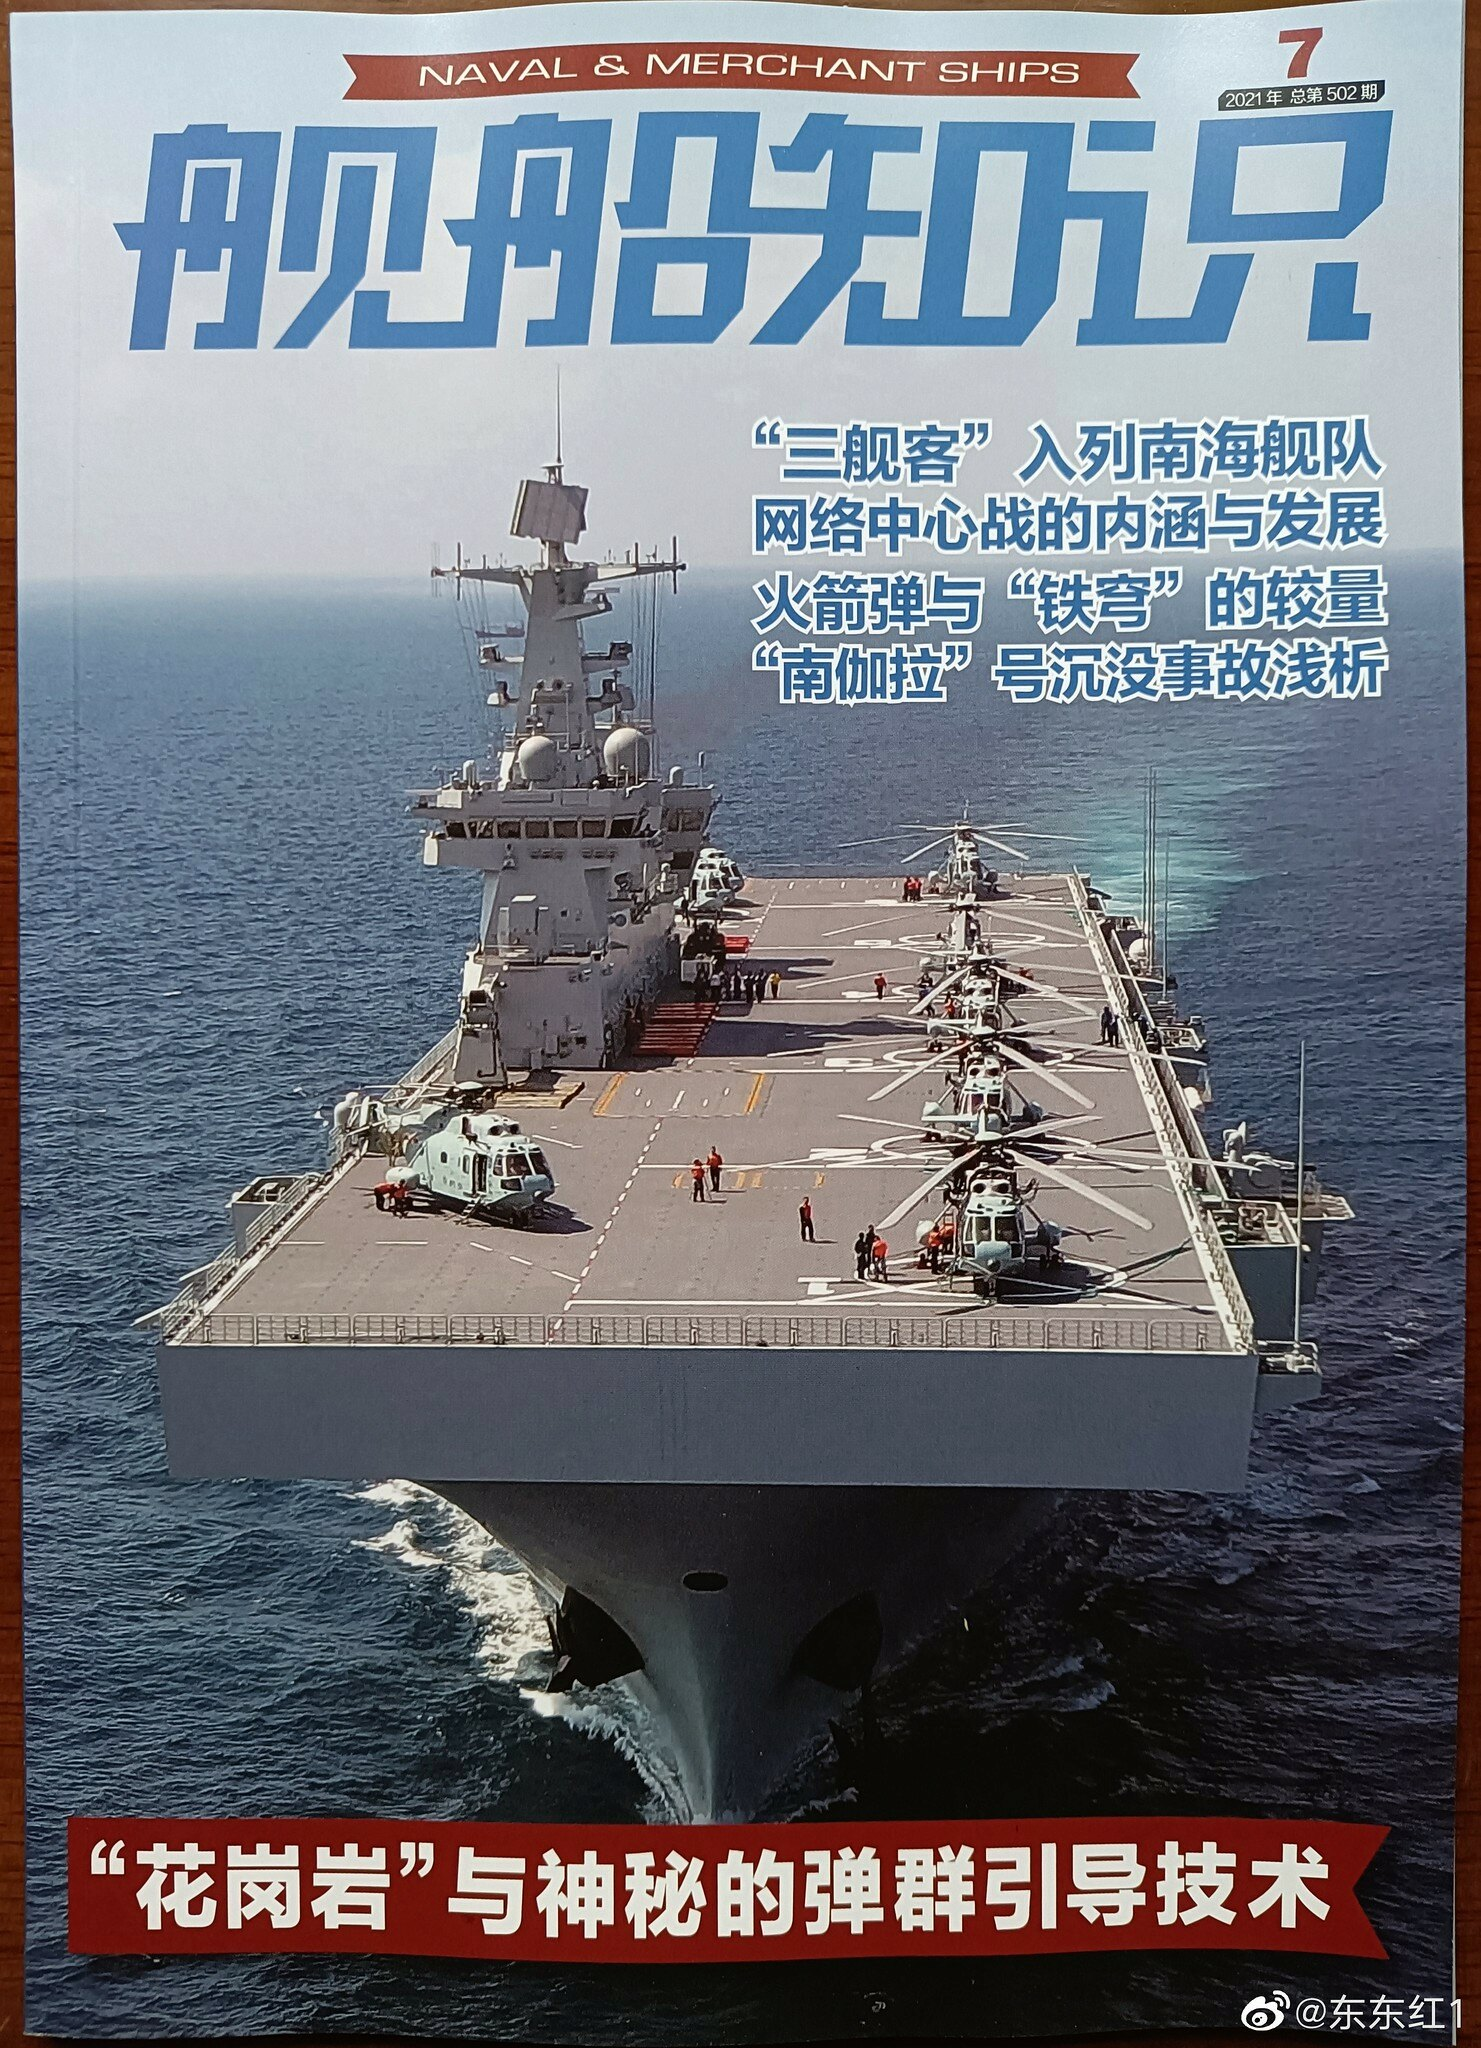 Type 075 landing helicopter dock (LHD) - Page 7 7510